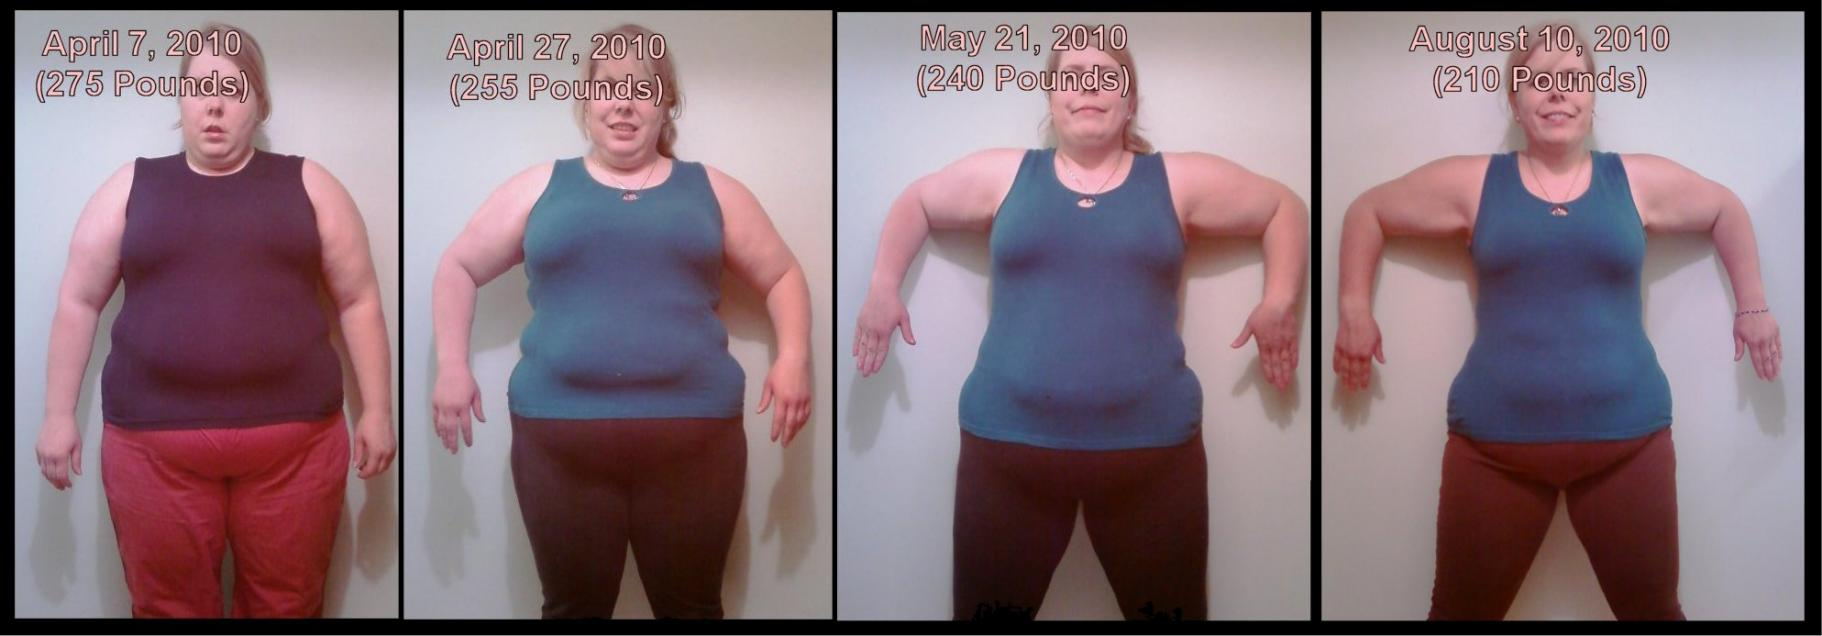 Hcg Injections For Weight Loss Reviews   Blog Dandk